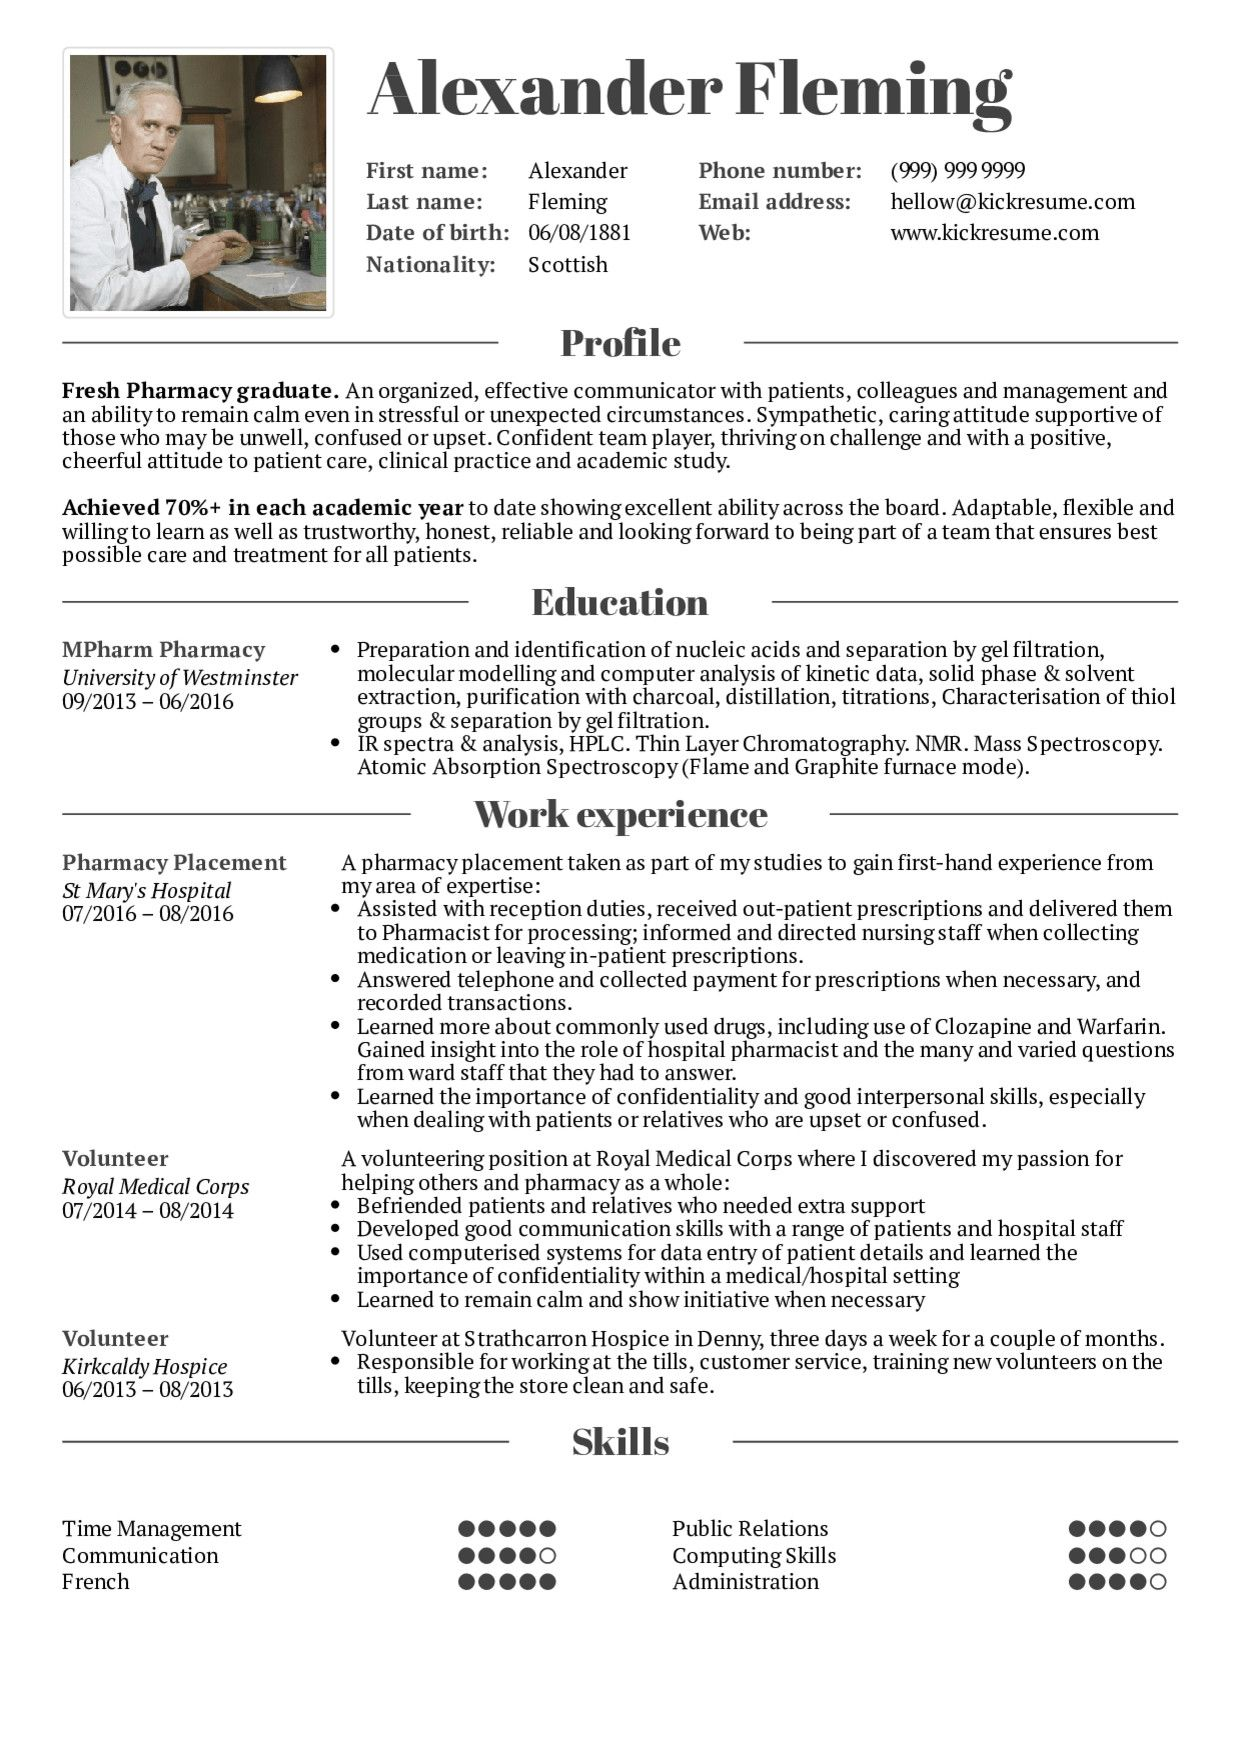 Resume Examples For Students Contemporary Resume Examples By Real People Student Resume Pharm Medical Assistant Resume Student Resume Resume Examples